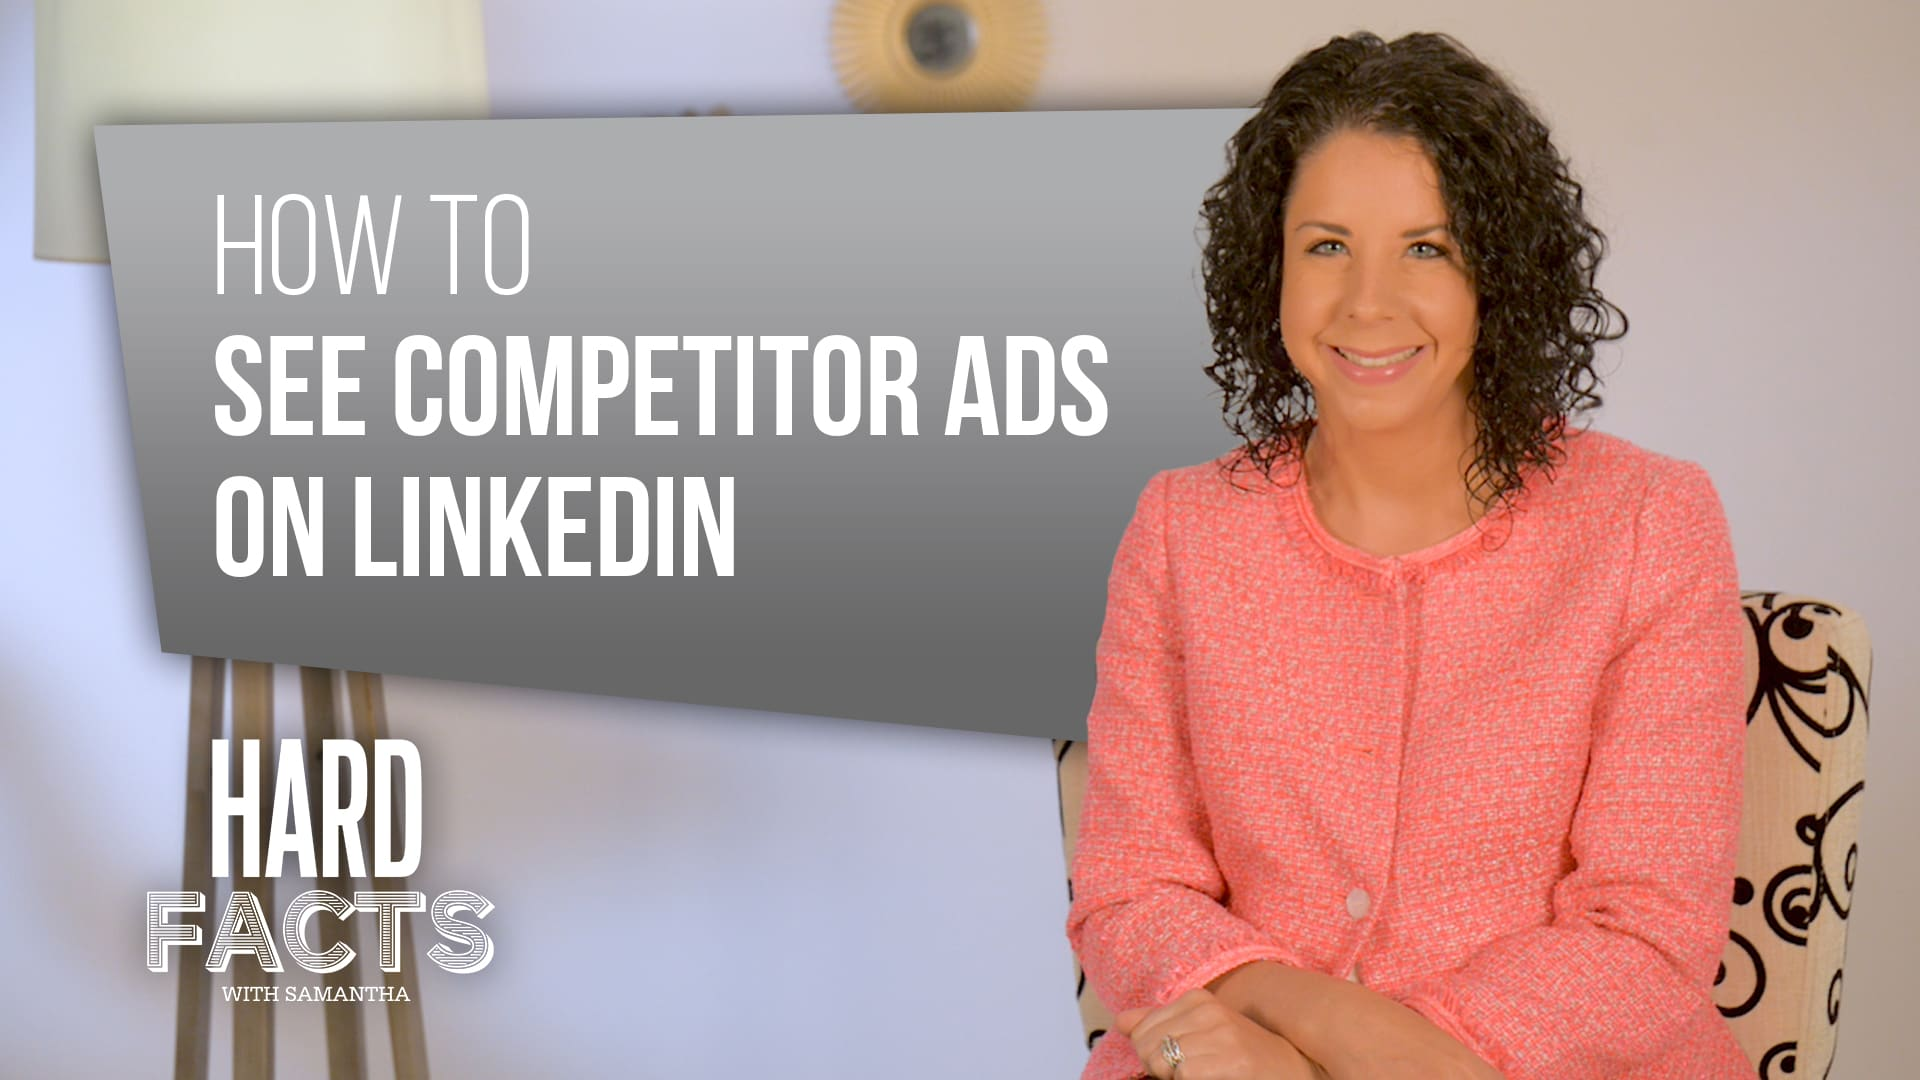 How to See Competitor Ads on LinkedIn